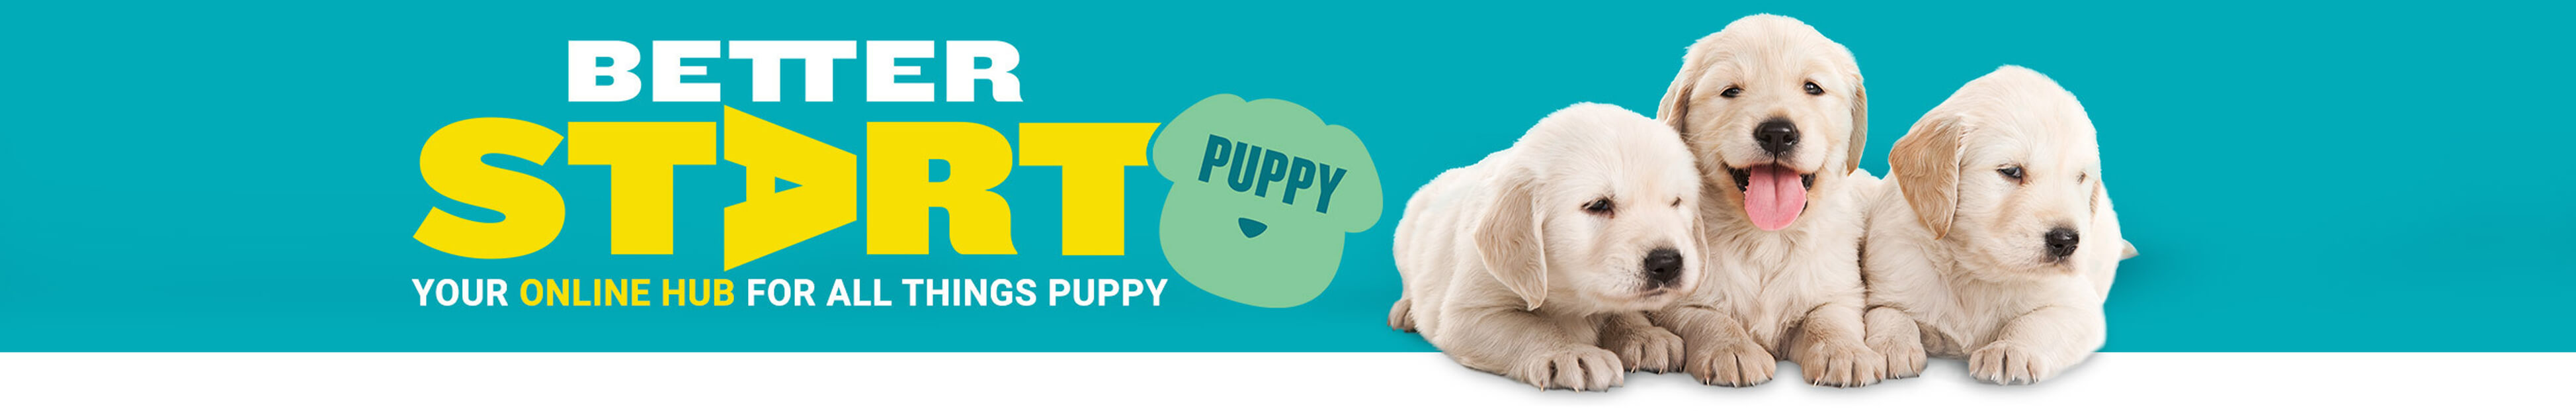 Better Start Puppy - Your online hub for all things puppy